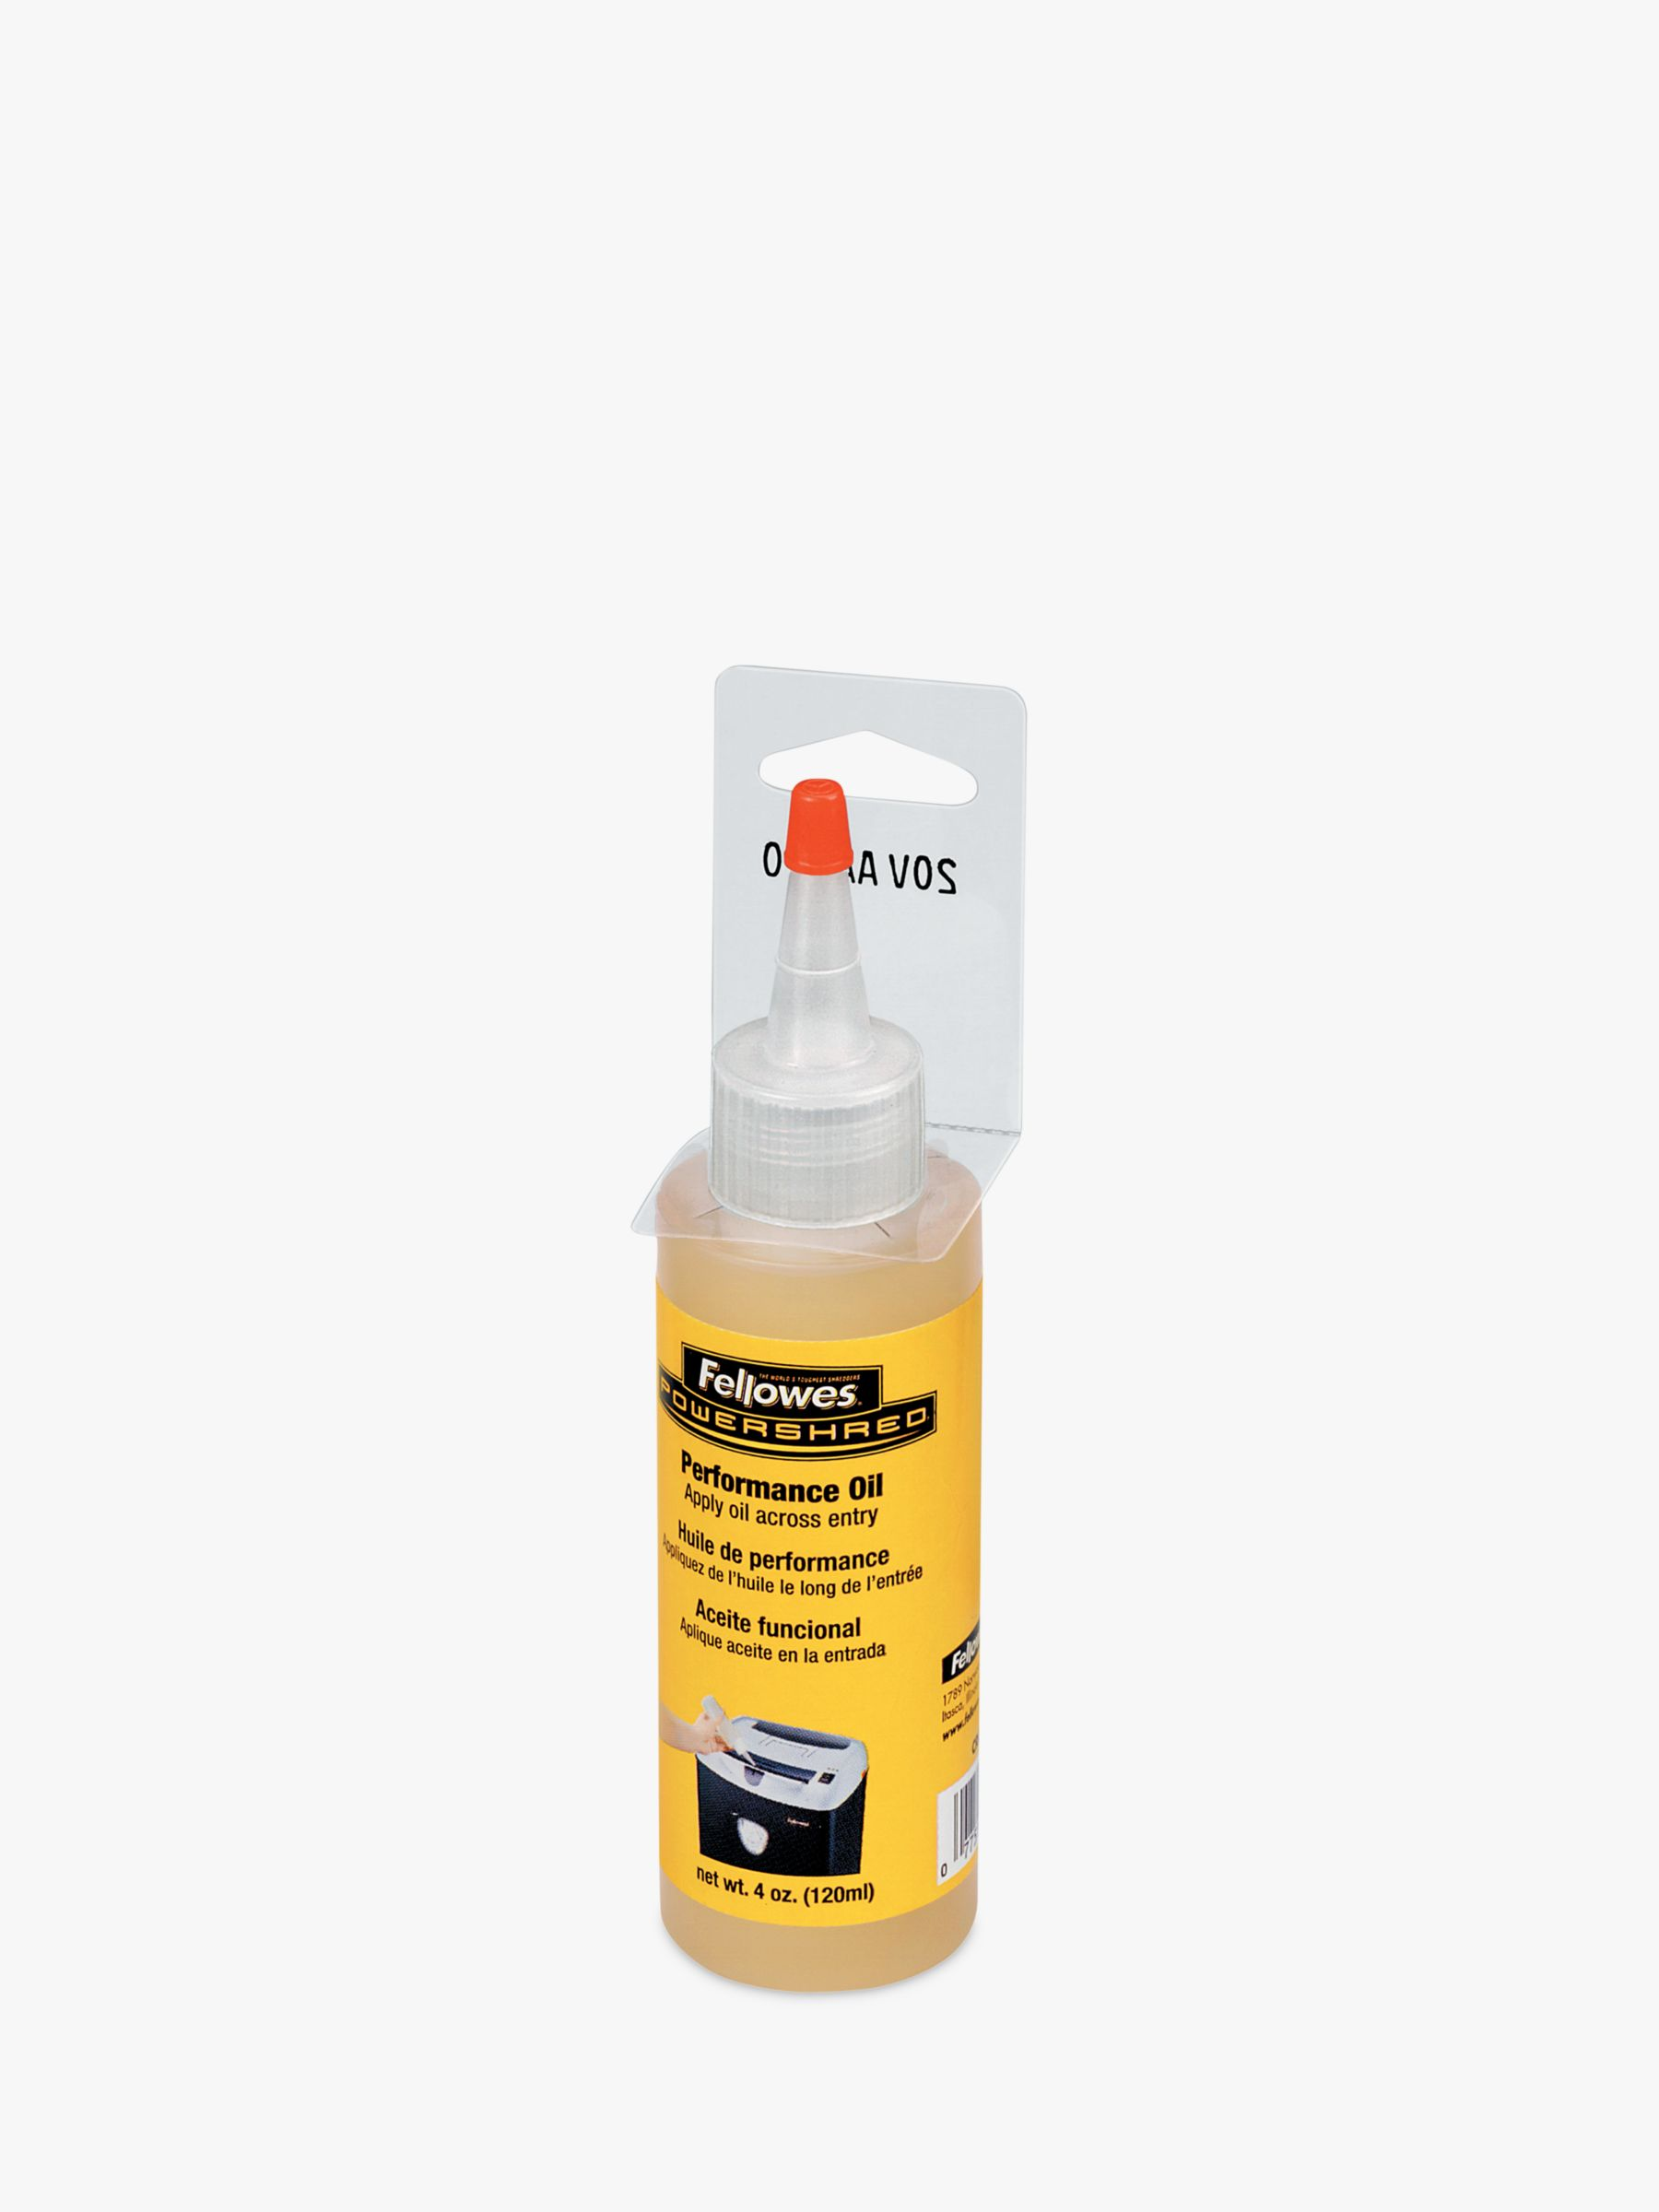 Fellowes Fellowes Shredder Oil, 120ml